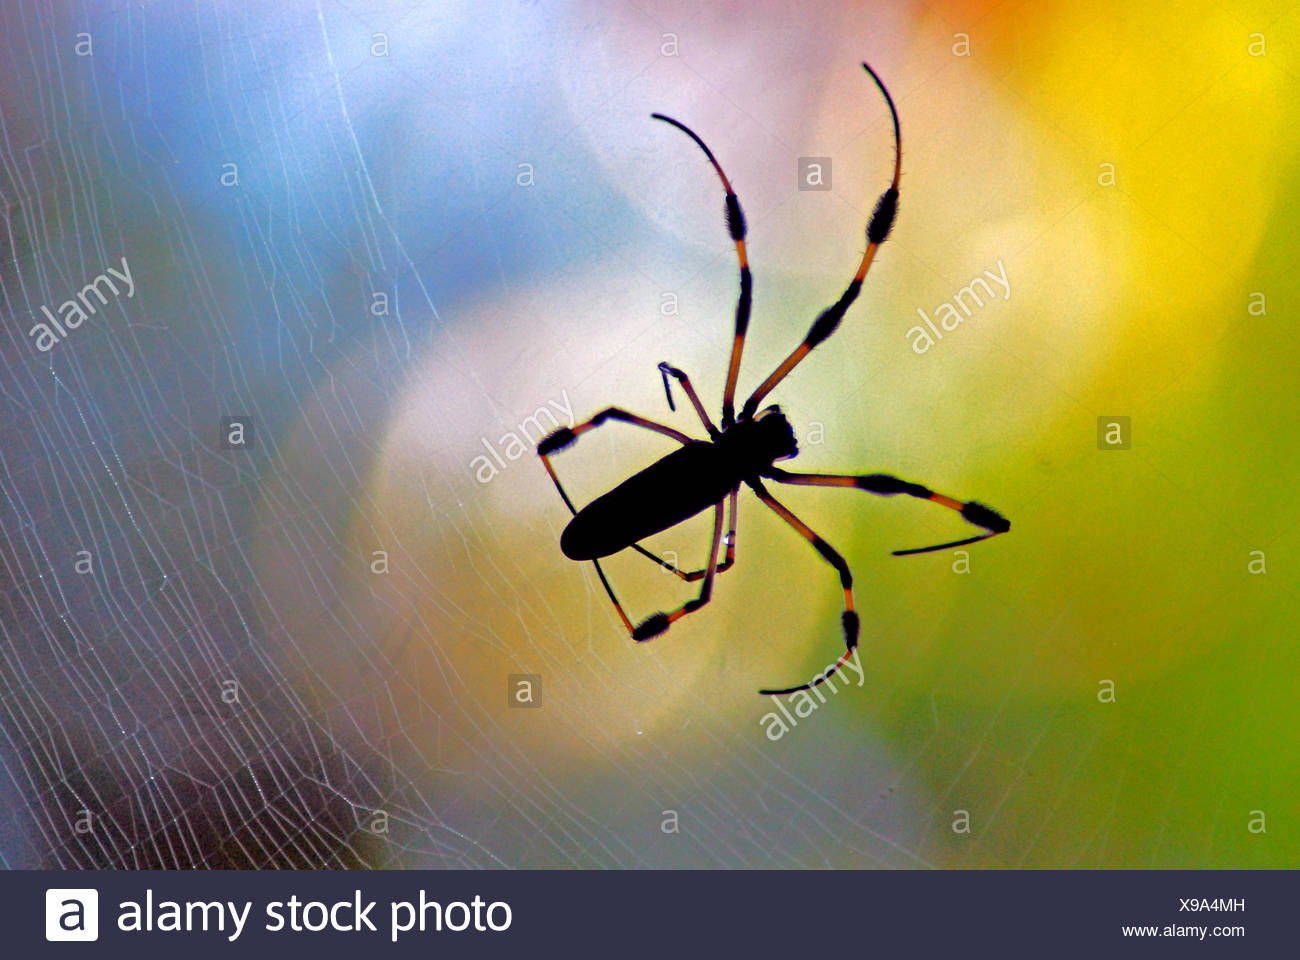 USA, Florida, Orange County, Orlando, Golden Orb Spider - Stock Image